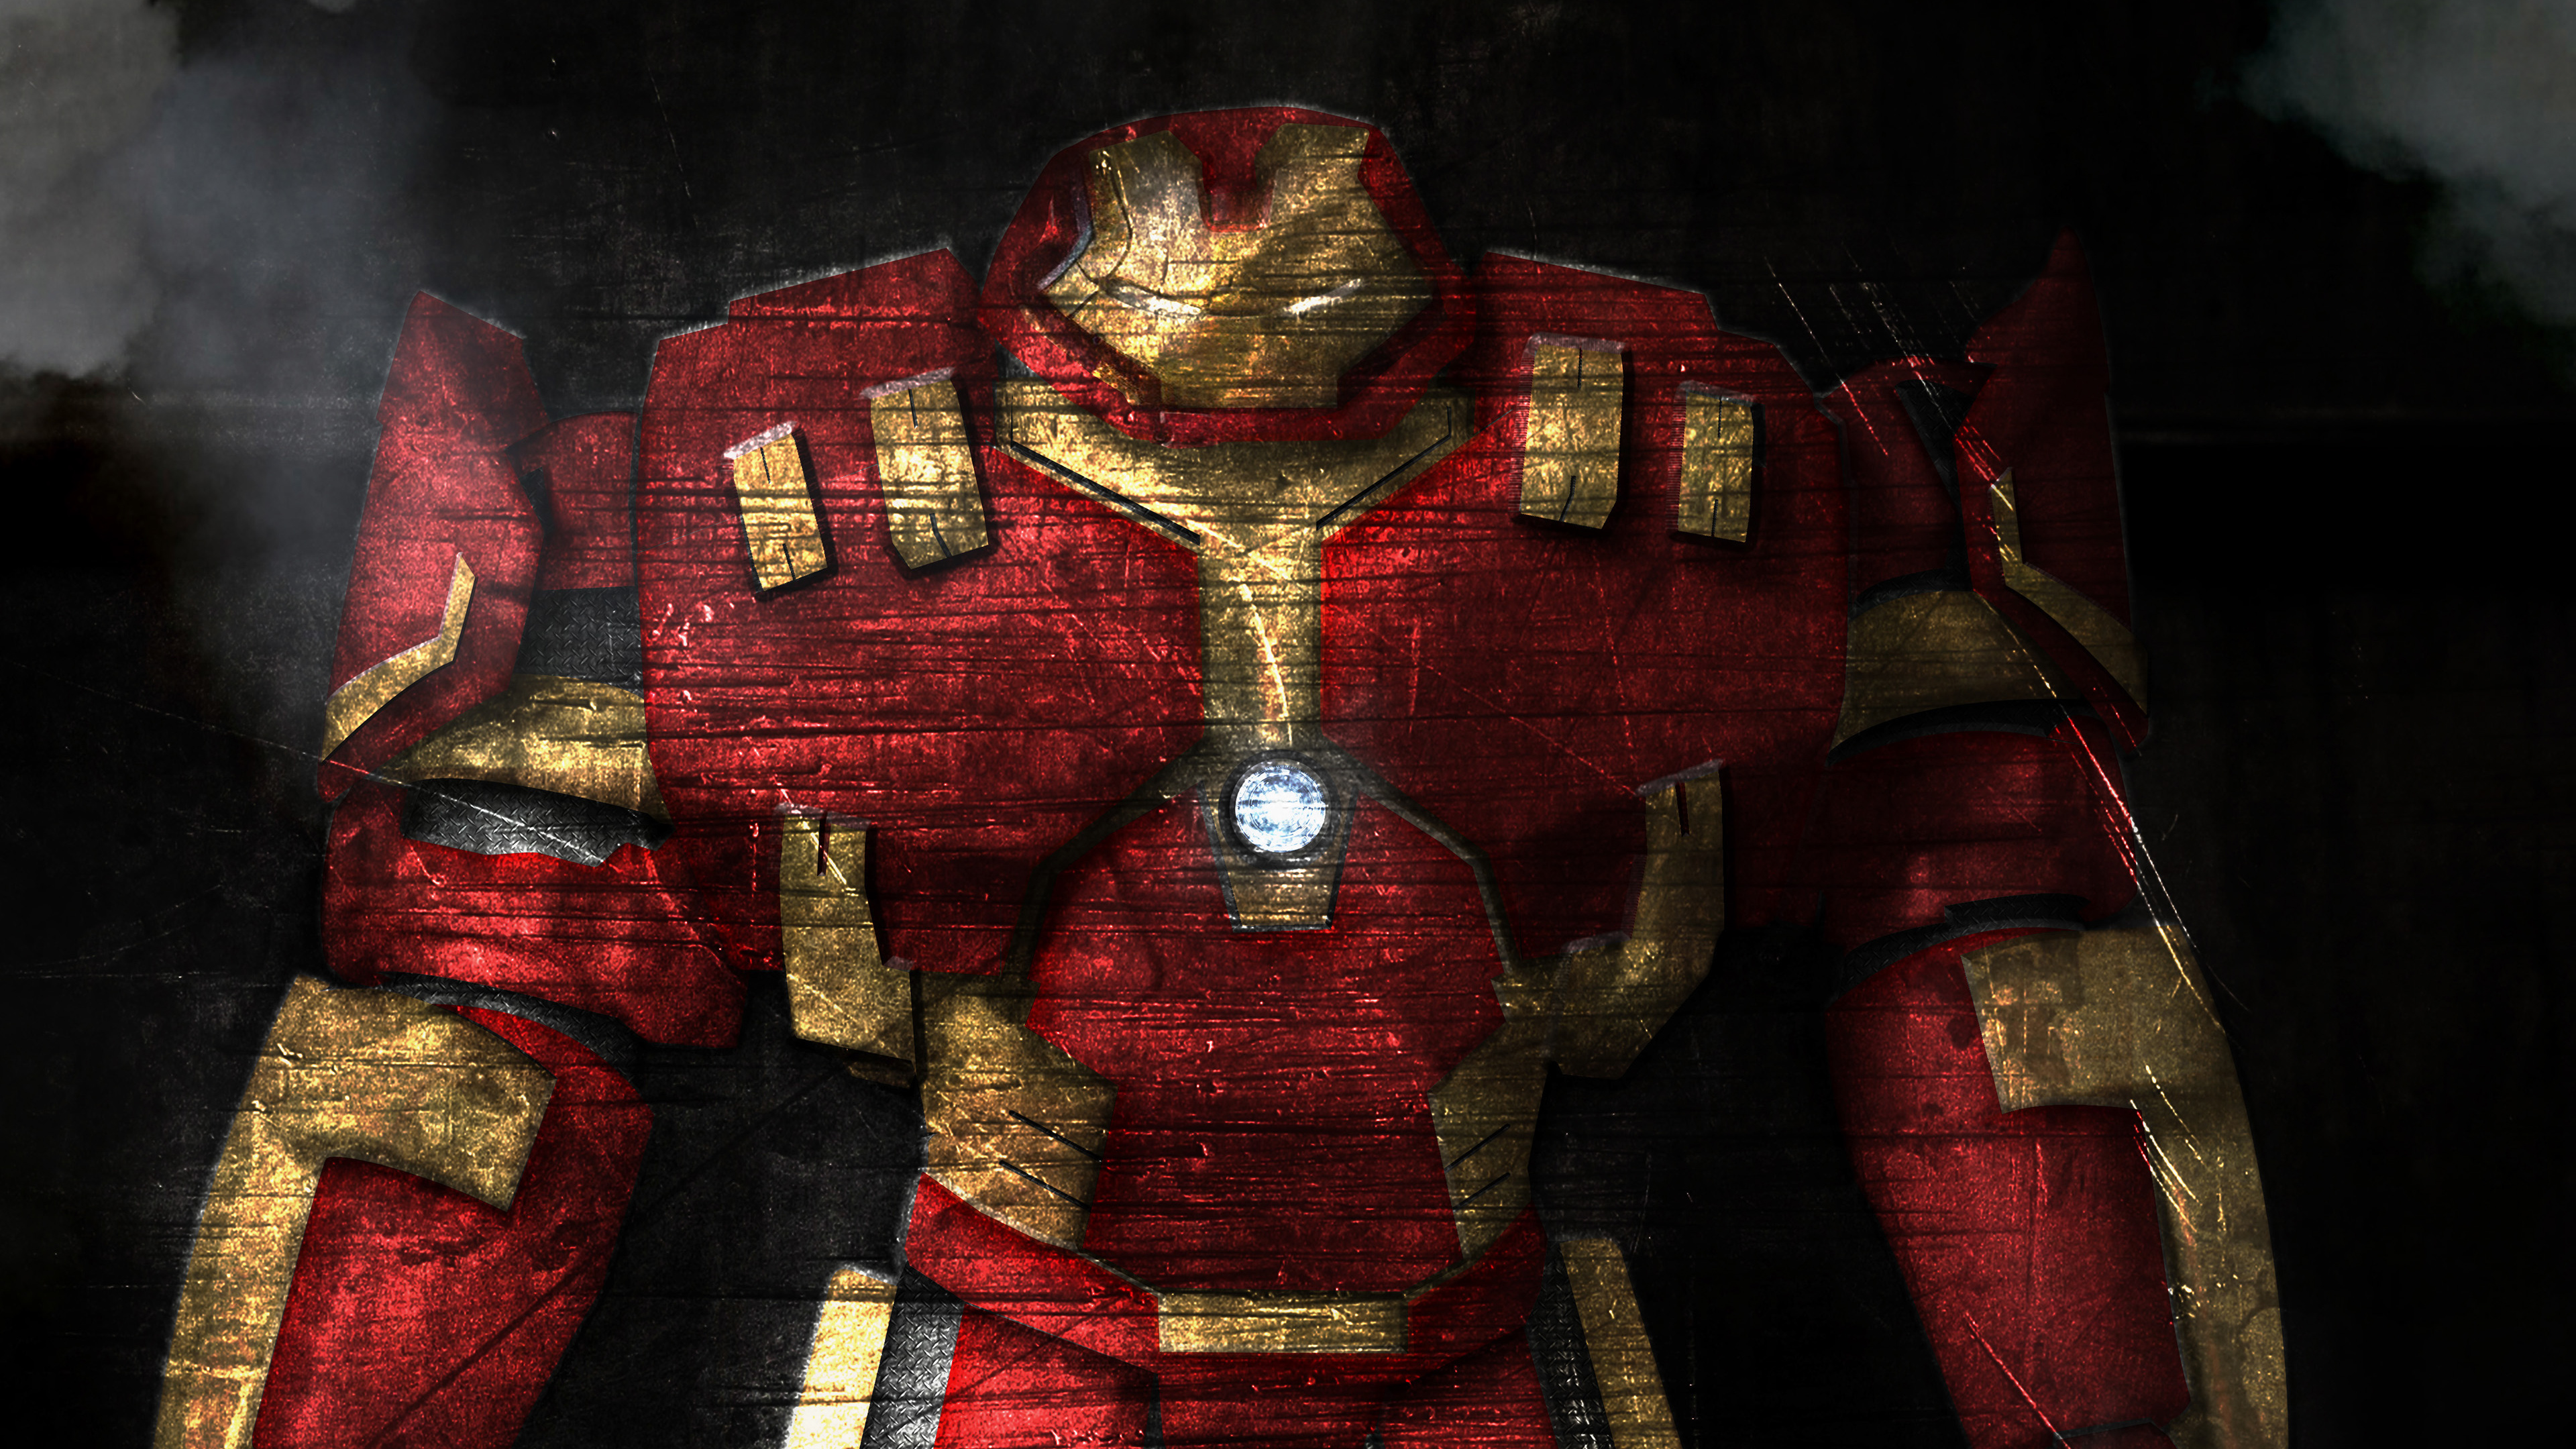 marvel hulkbuster 4k art 1544923163 - Marvel Hulkbuster 4k Art - superheroes wallpapers, iron man wallpapers, hulkbuster wallpapers, hd-wallpapers, behance wallpapers, 4k-wallpapers